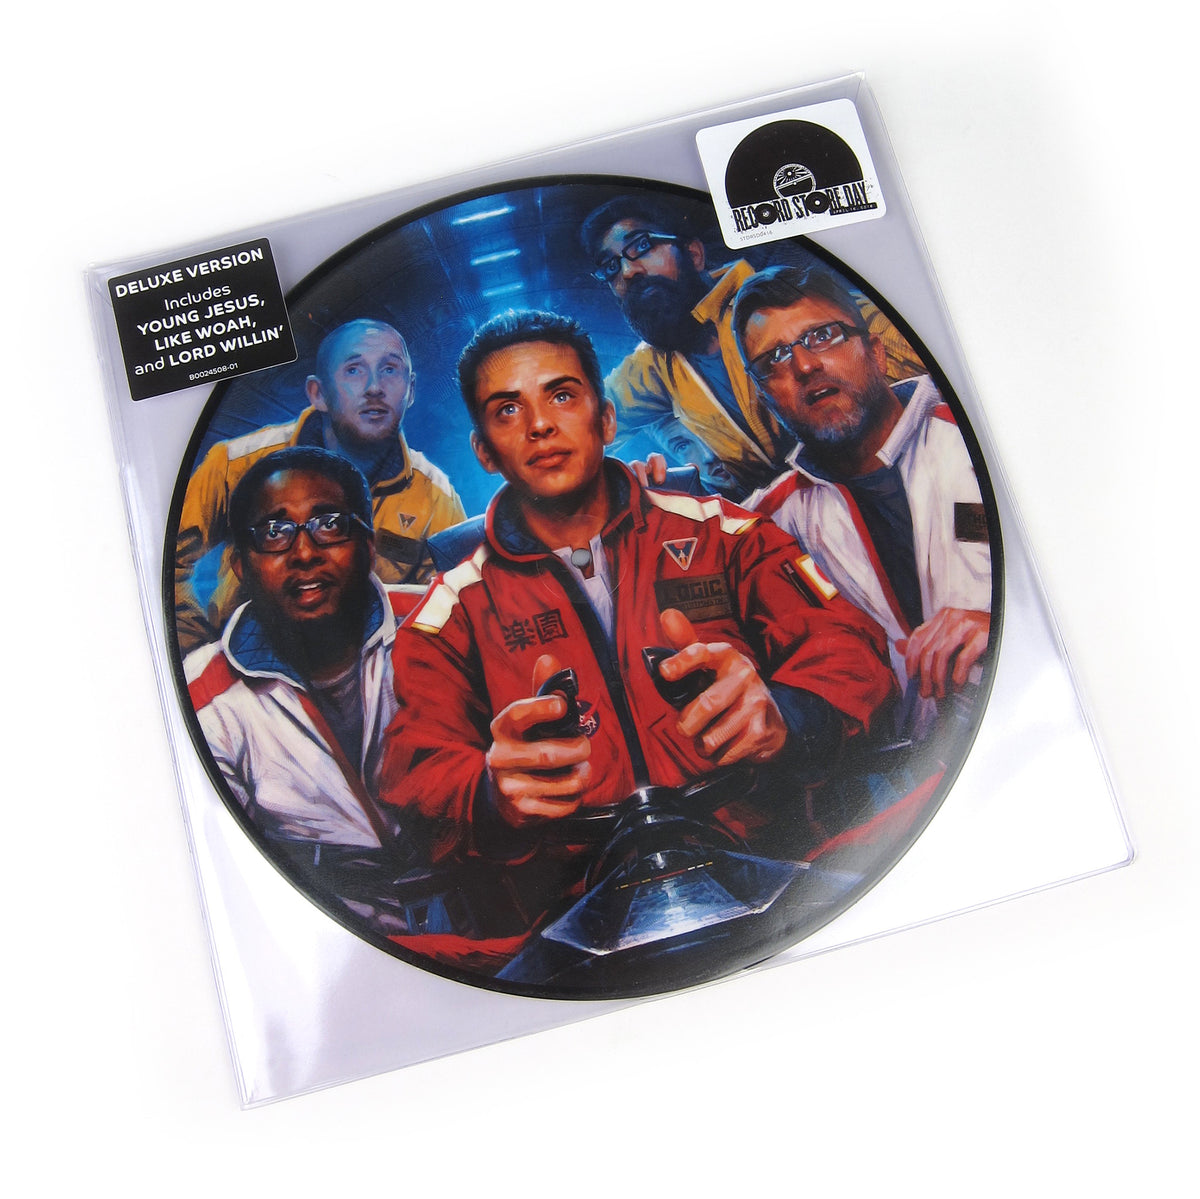 Logic: The Incredible True Story (Pic Disc) Vinyl LP (Record Store Day)